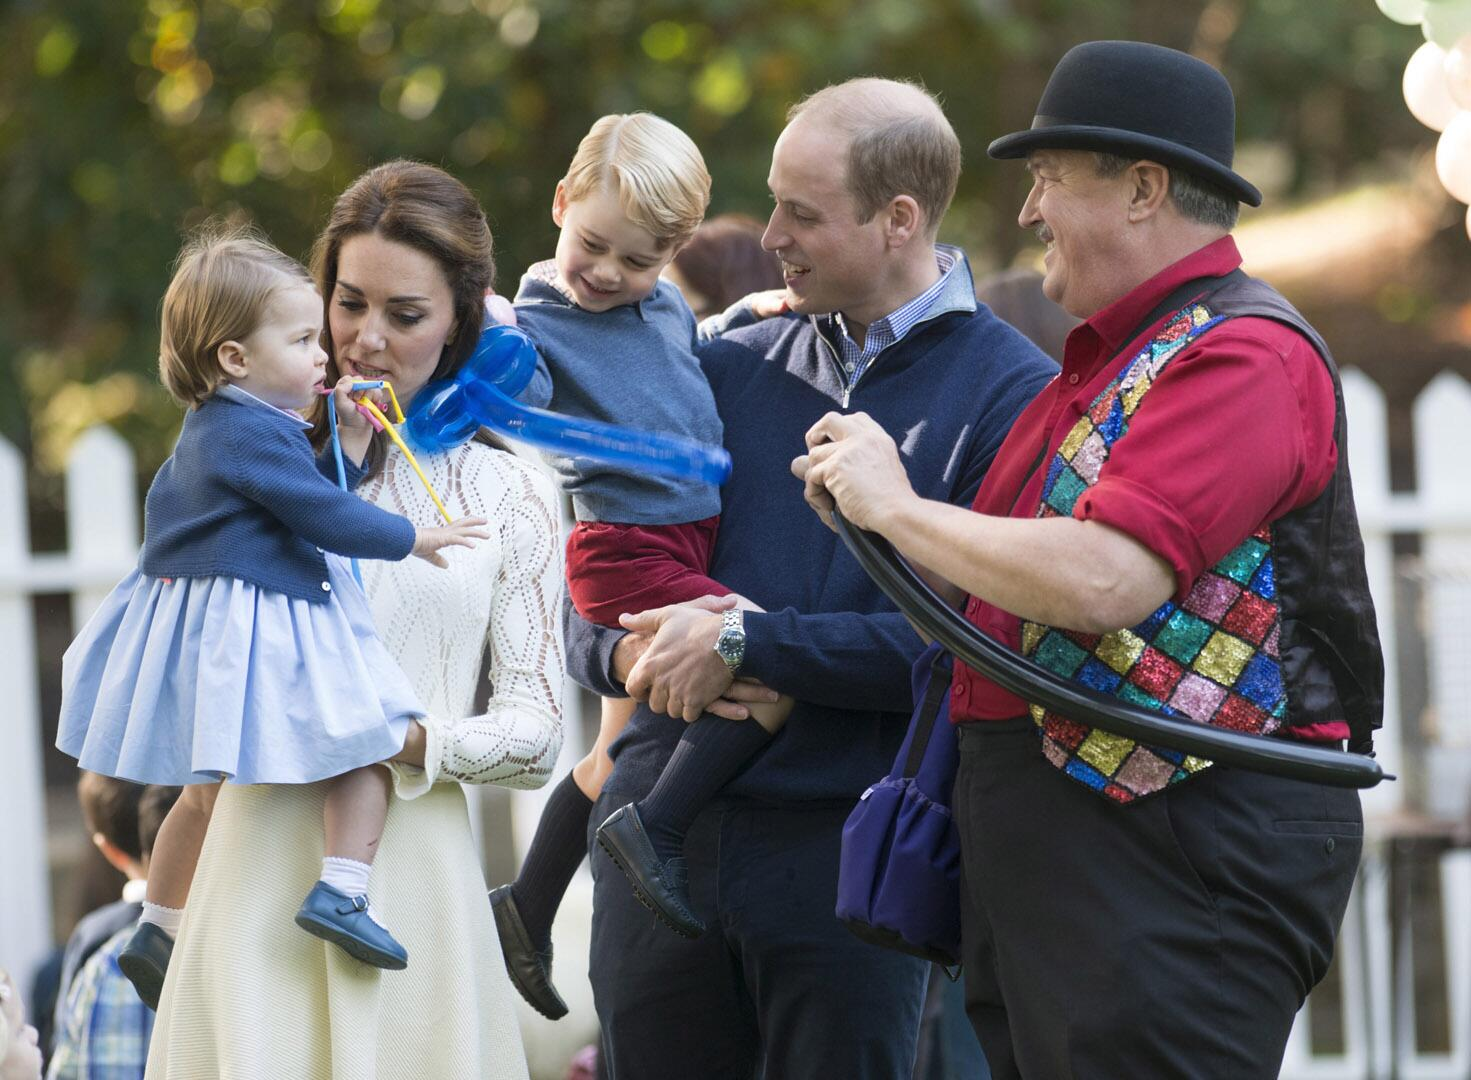 Bild zu Royals, Prinz George, Prinzessin Charlotte, Kinderparty, Kate, William, Luftballons